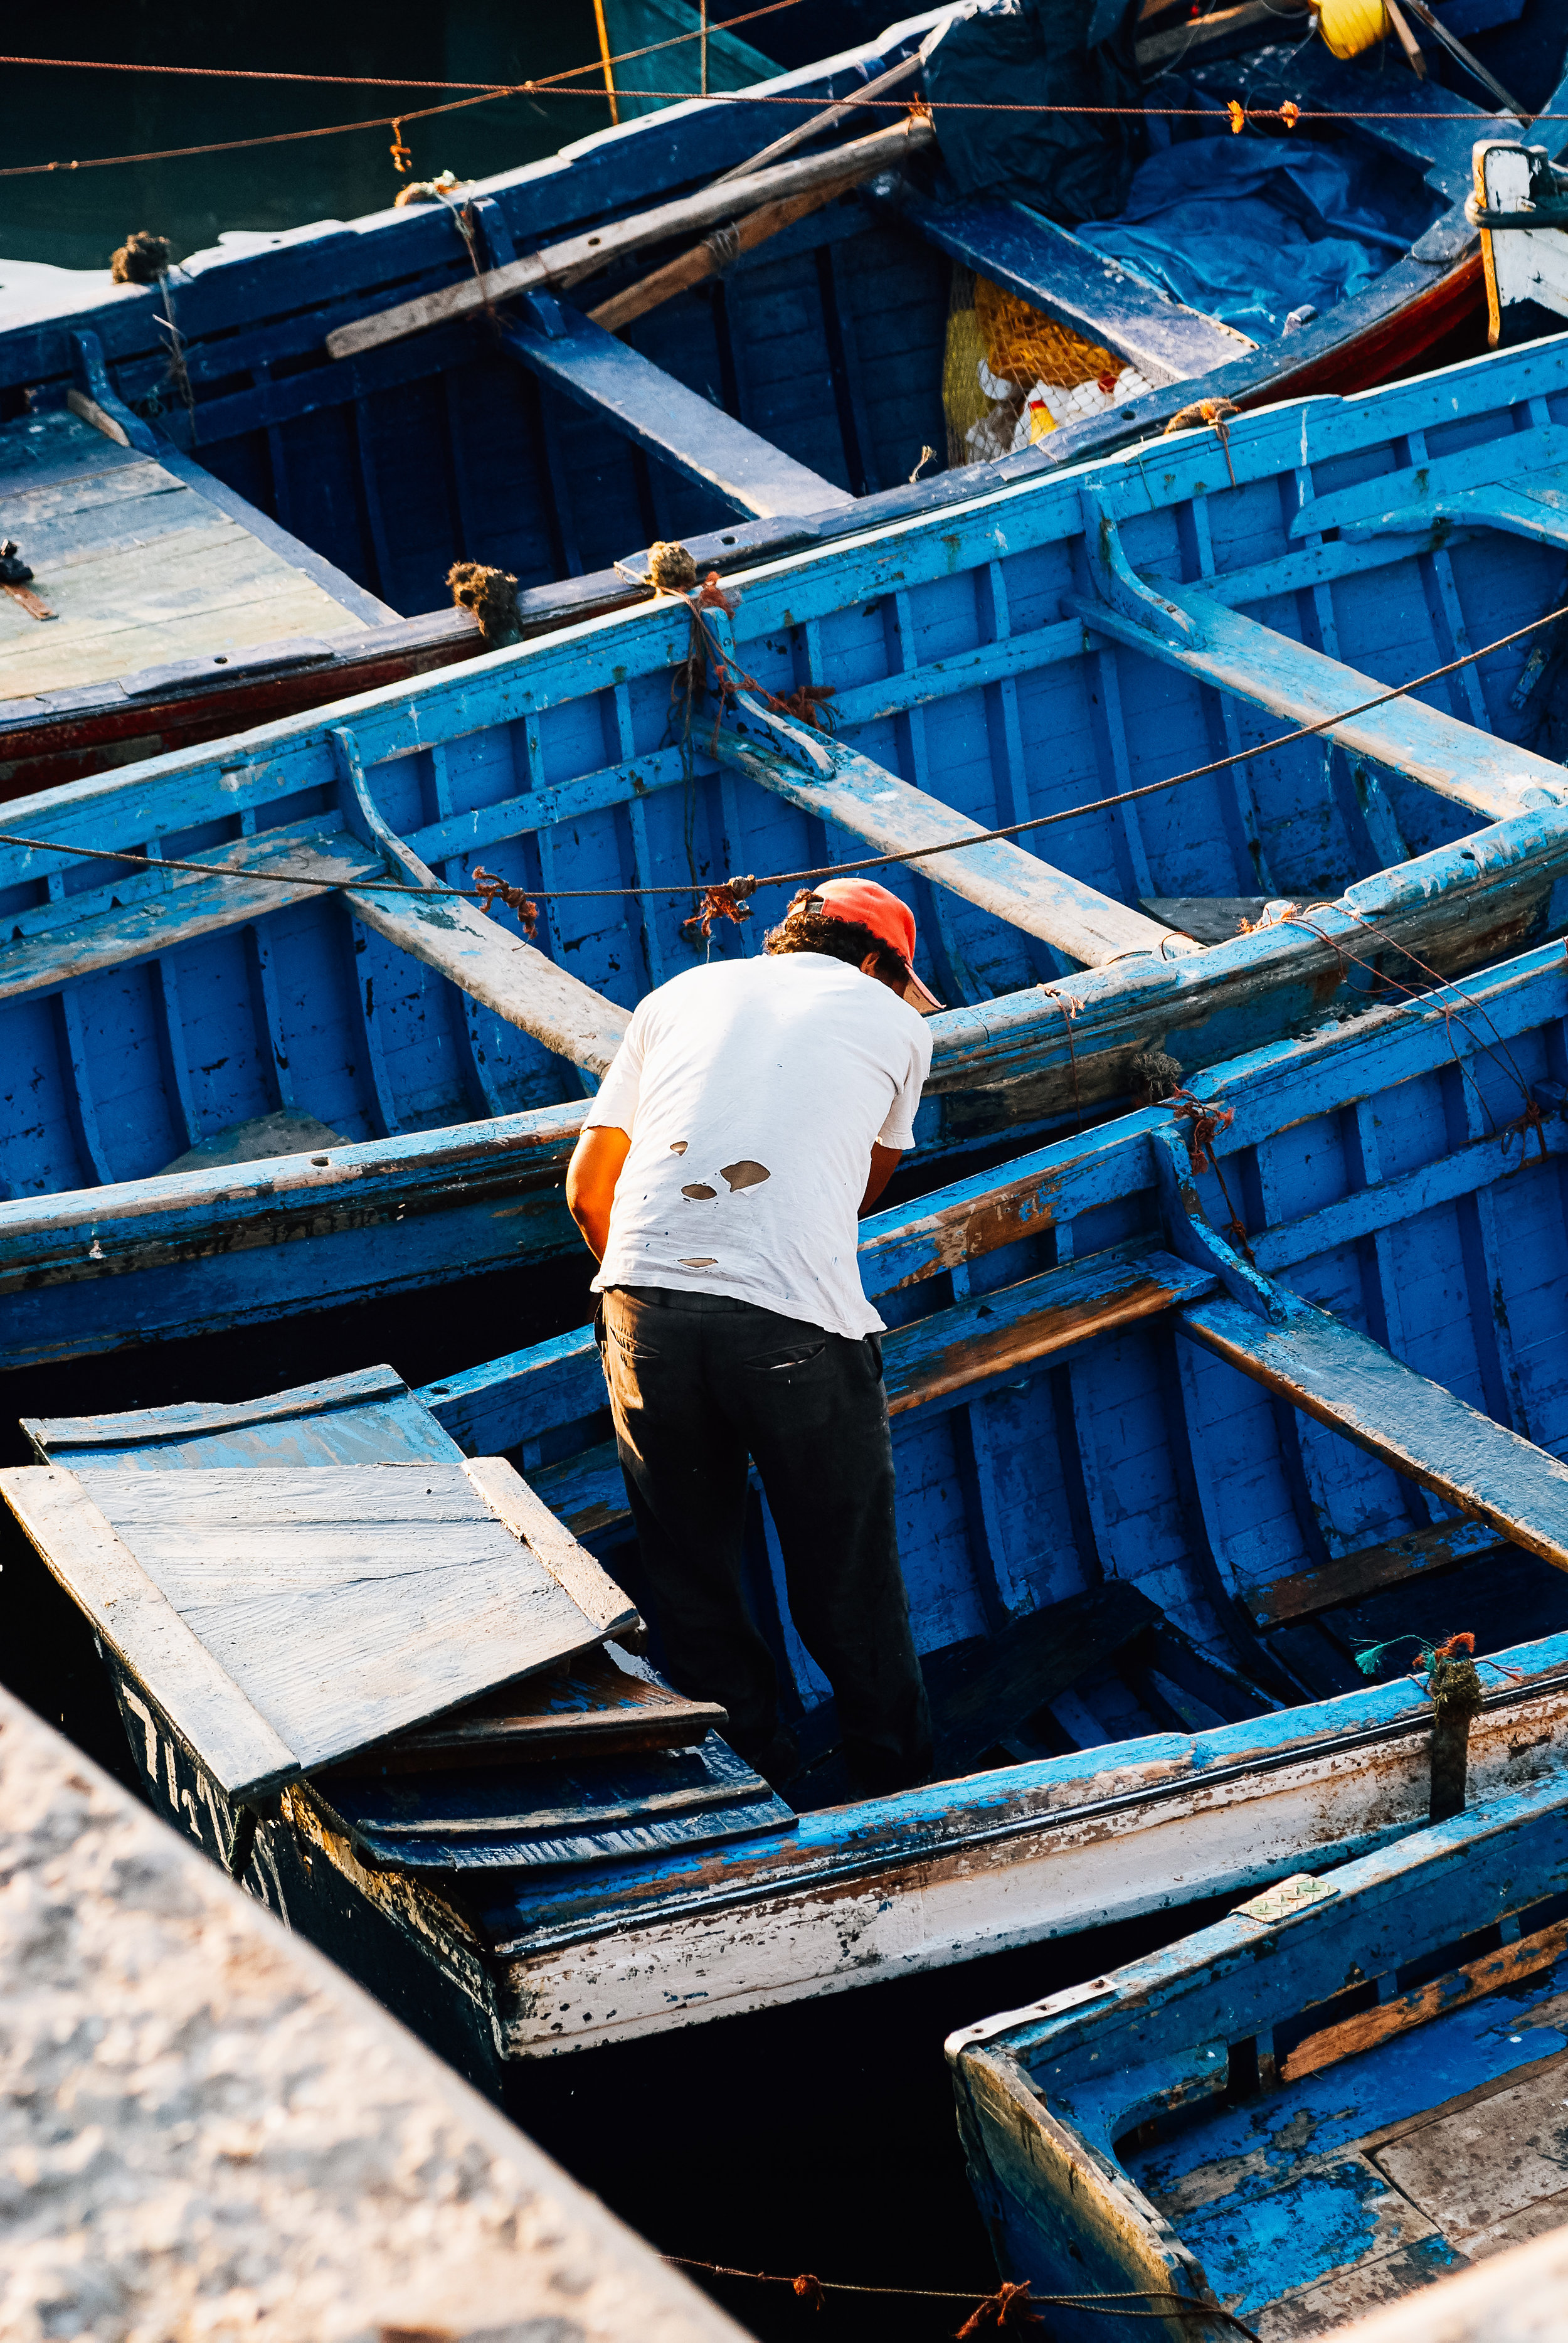 Fisherman Essaouira Morocco Toronto Travel Photographers - Suech and Beck